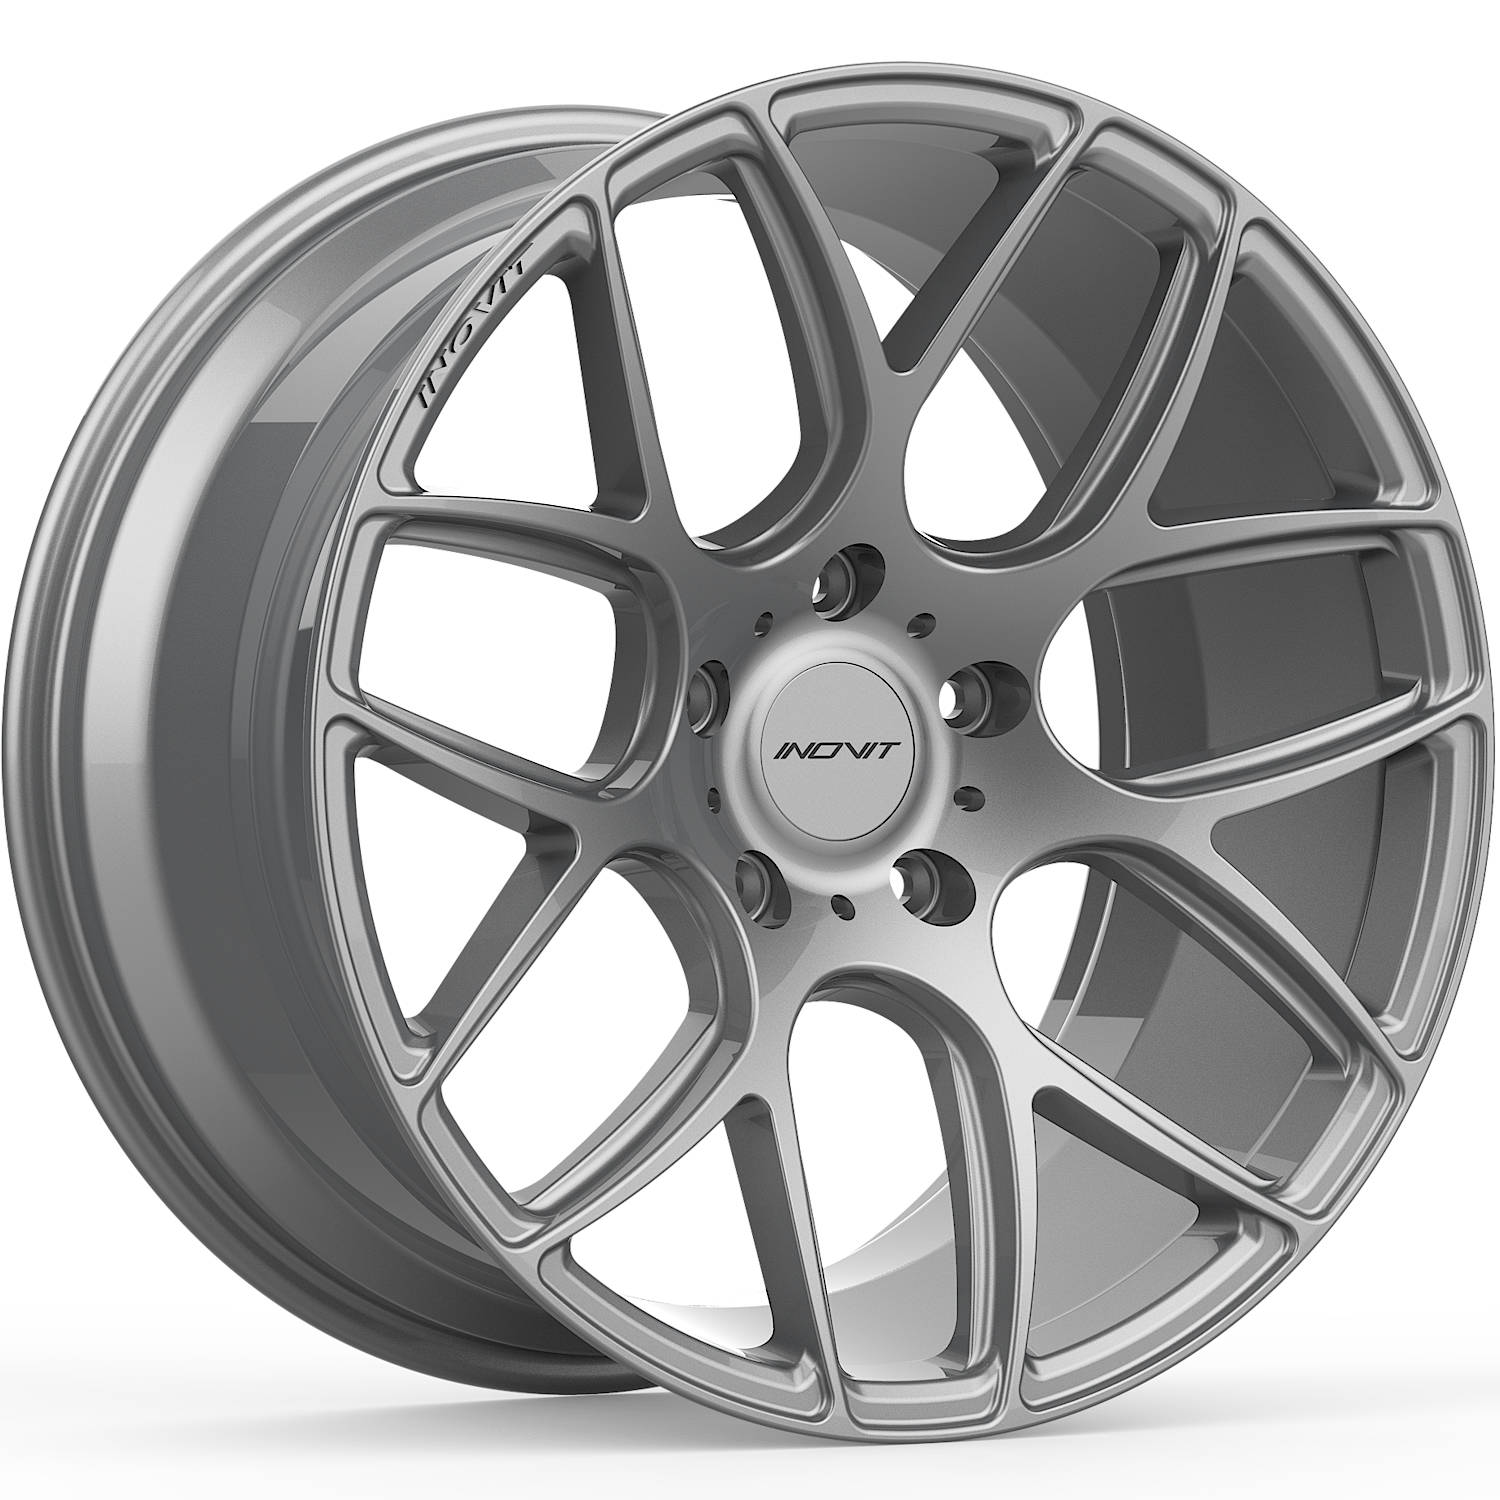 INOVIT Thrust Silver20x8.5 +40mm